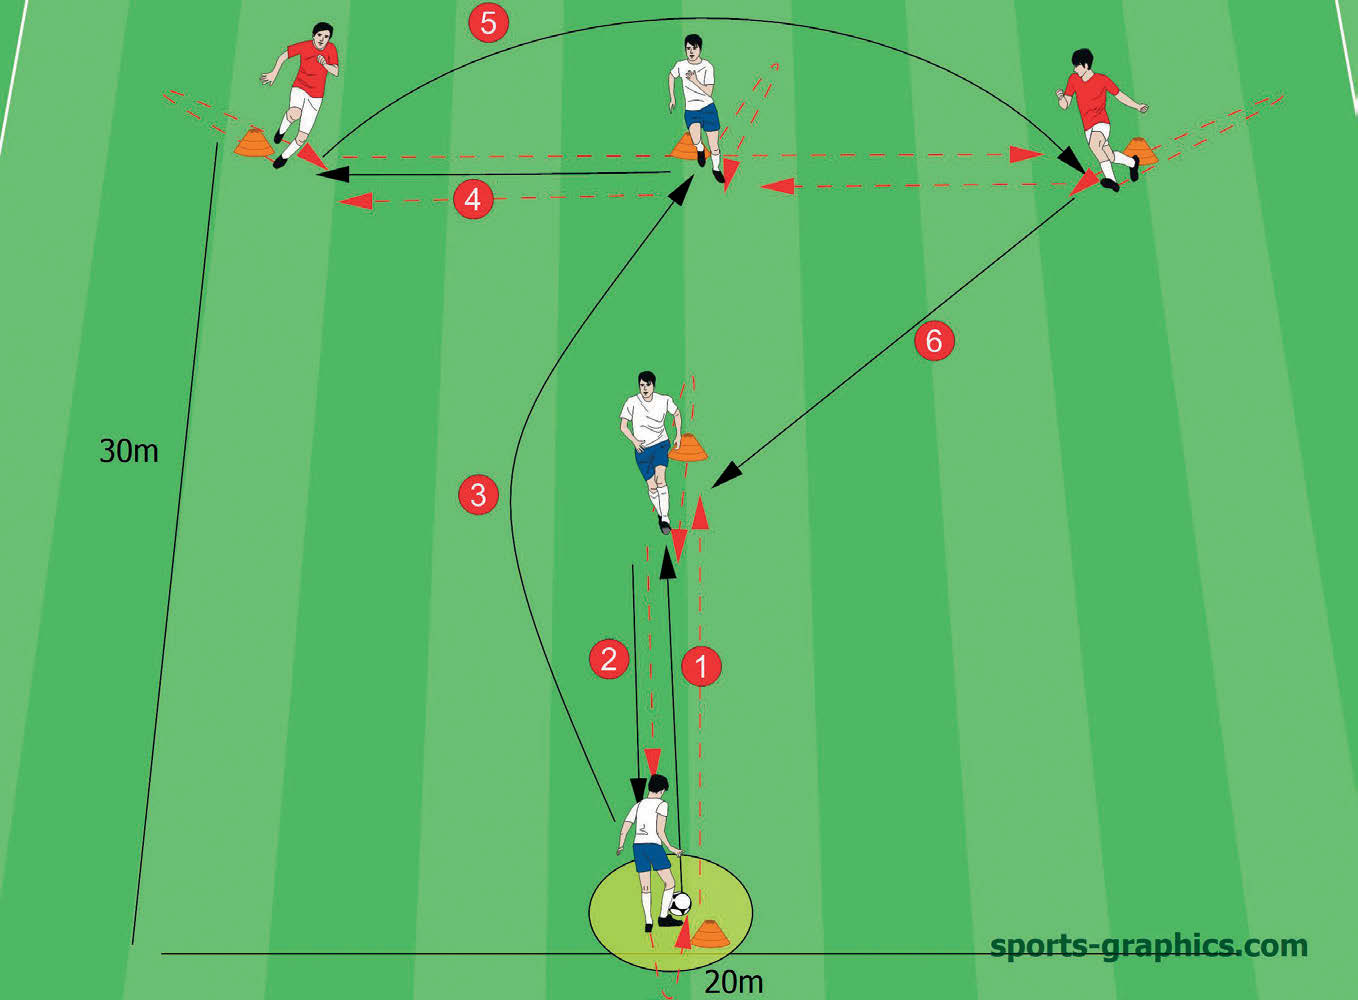 Lob Pass Soccer Passing Drill 2